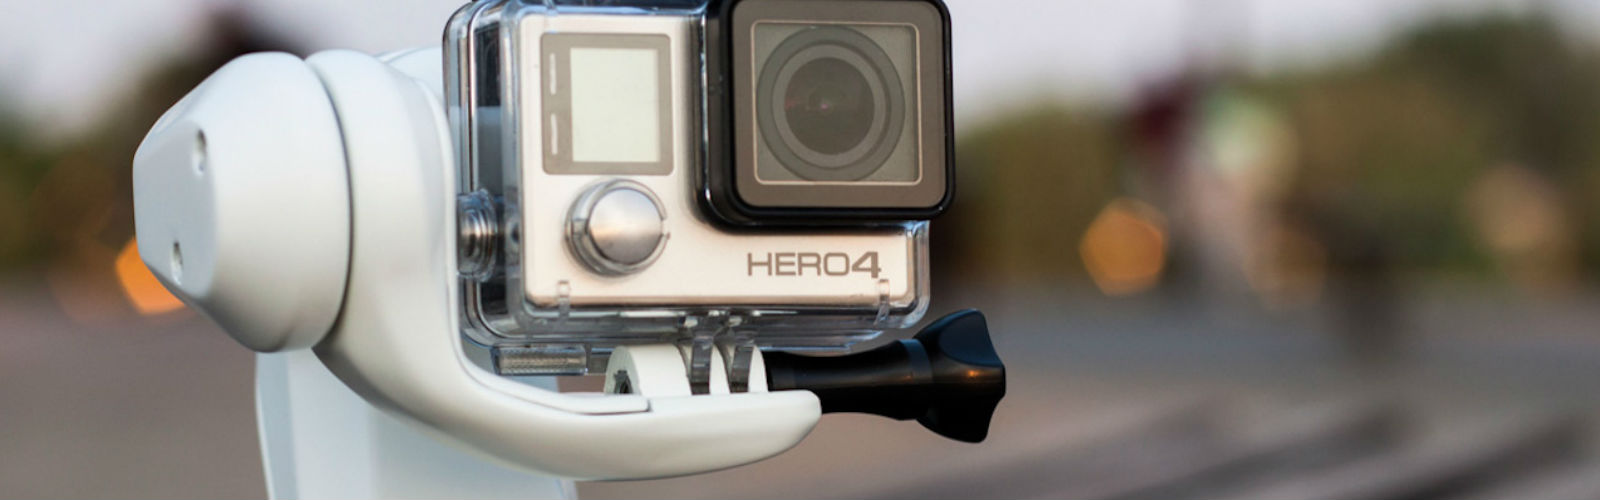 Sybrillo Is an Intelligent Gimbal for Stable GoPro Footage